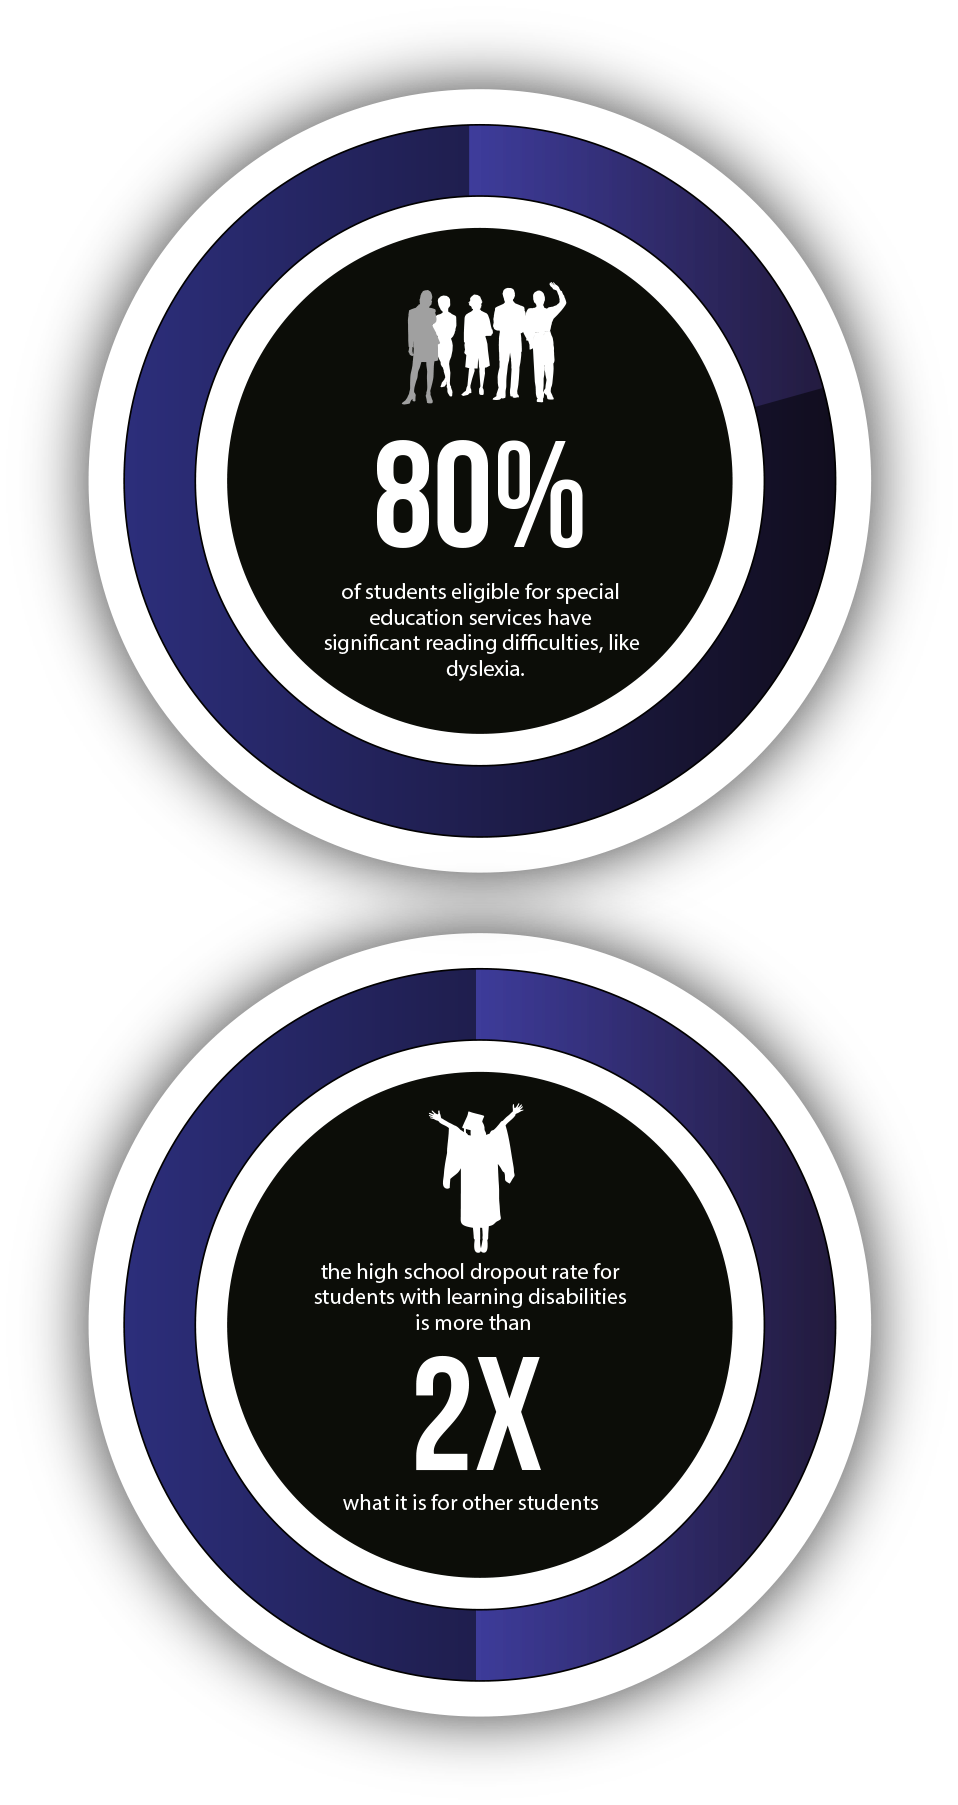 Infographic that explains thathigh school dropout rate is 2Xhigher for students with learningdisabilities